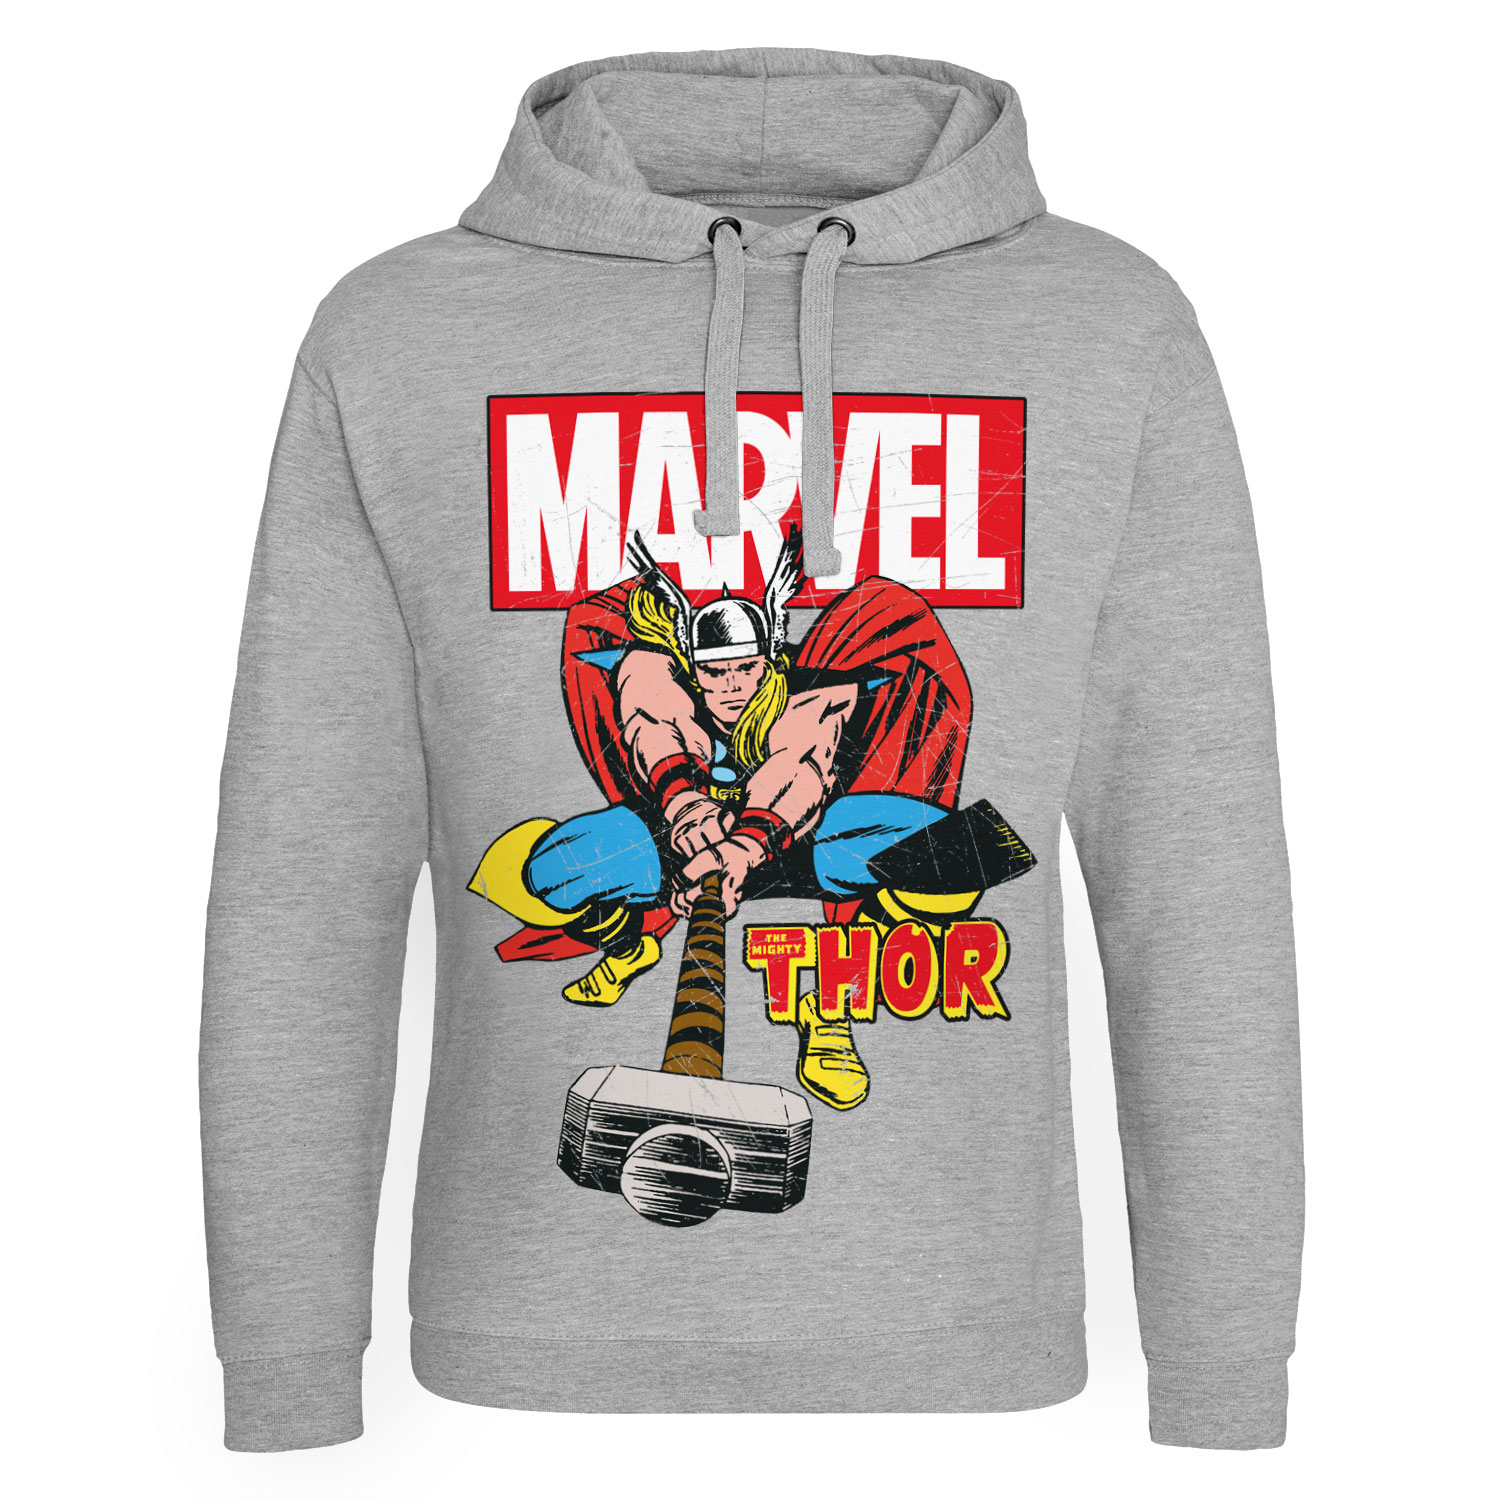 ThorAchat Chers Comics Pas Sweat Capuche The Mighty Marvel De 9WHED2IY